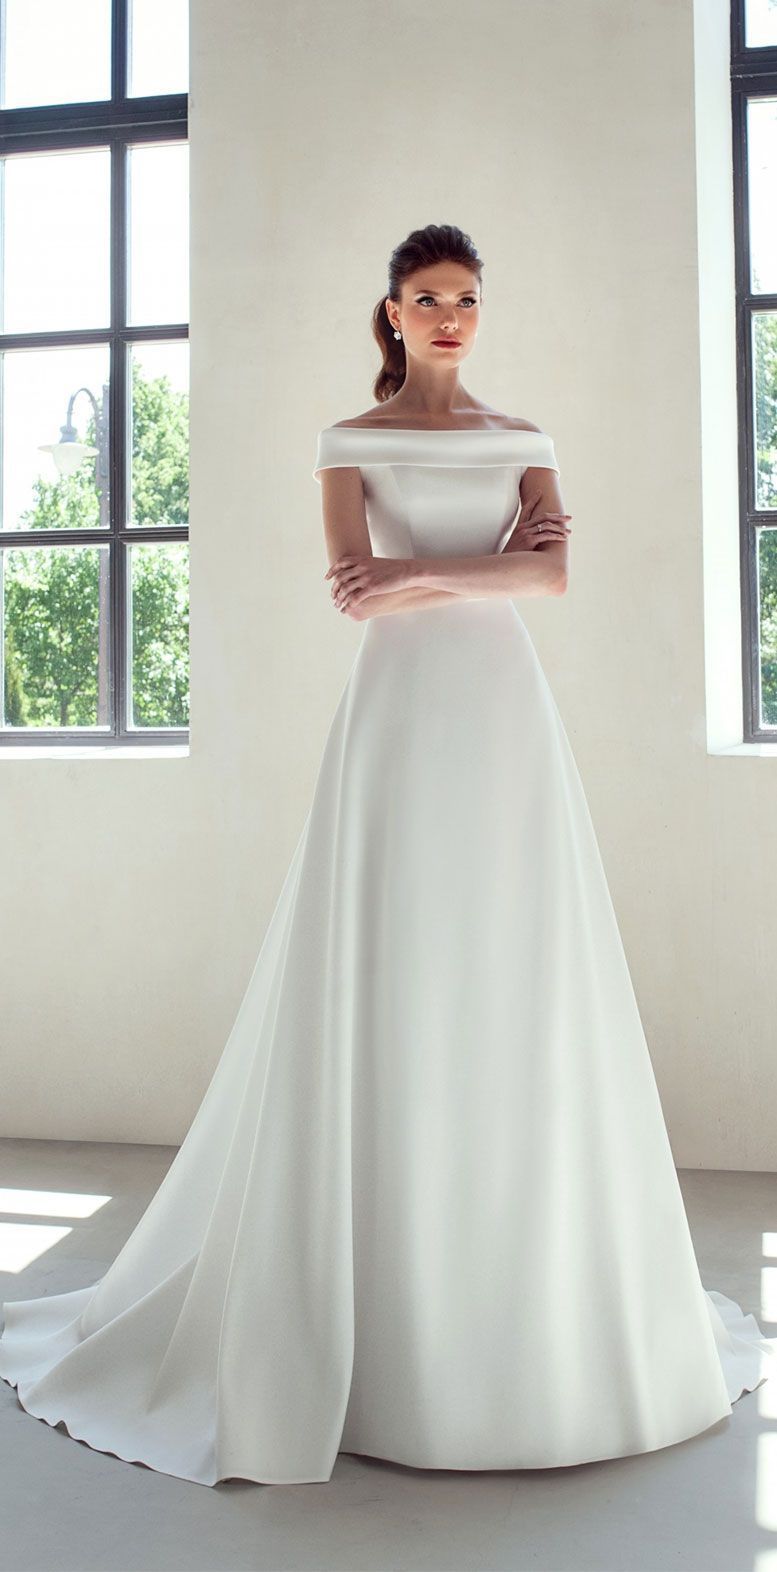 2020 Wedding Simple Wedding Gowns Off Shoulder Wedding Dress Wedding Dresses Simple